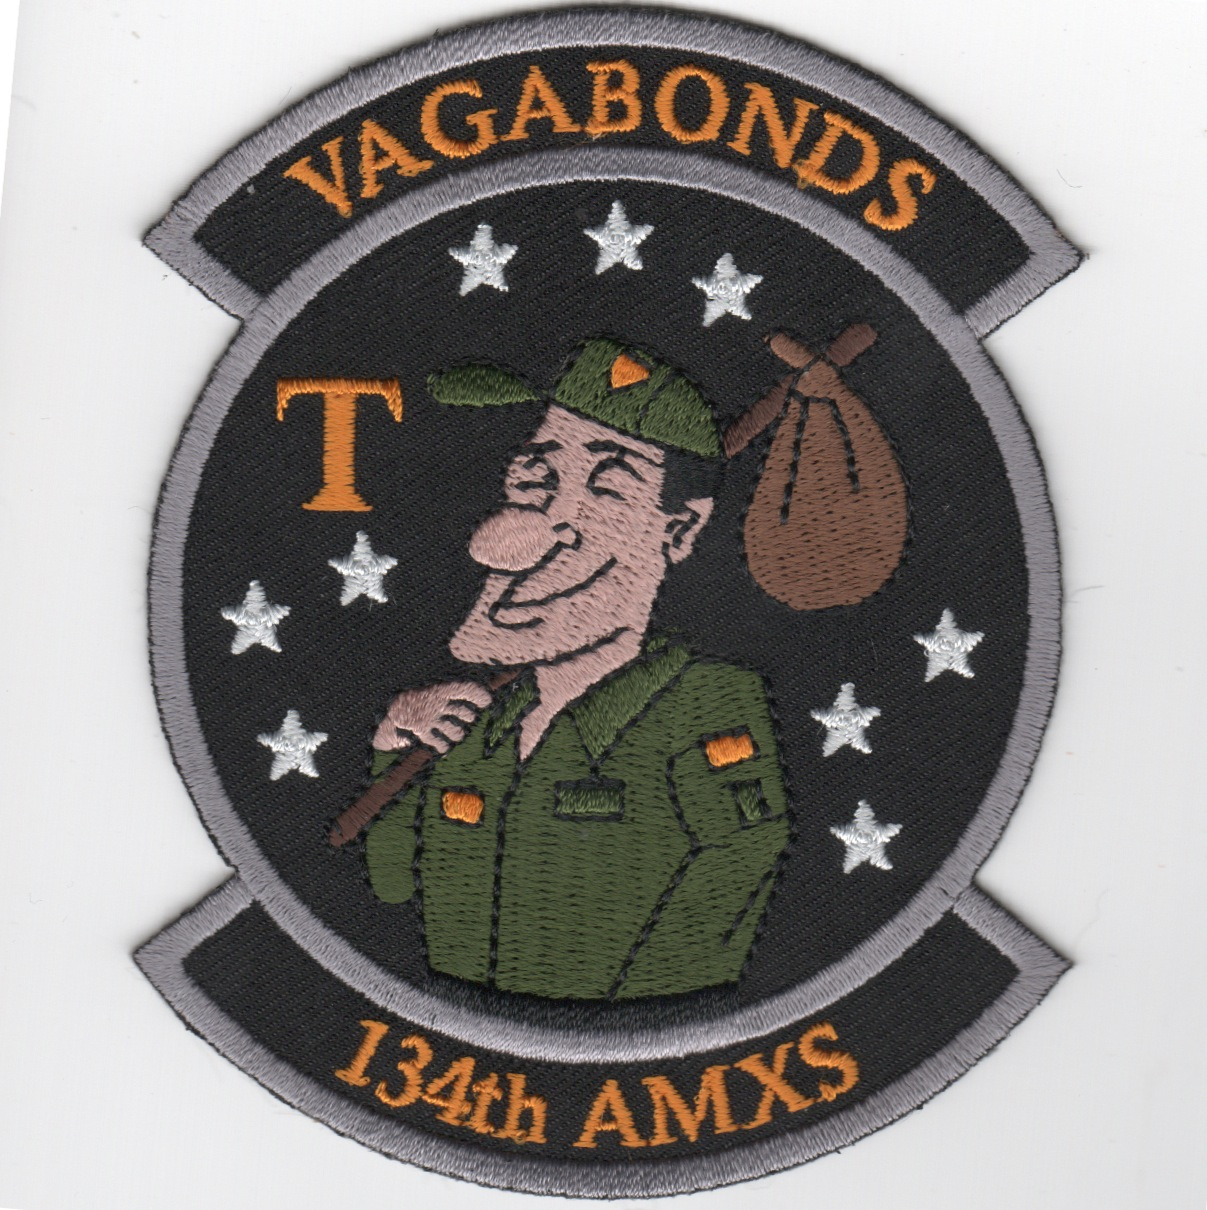 134 AMXS 'Vagabonds' Patch